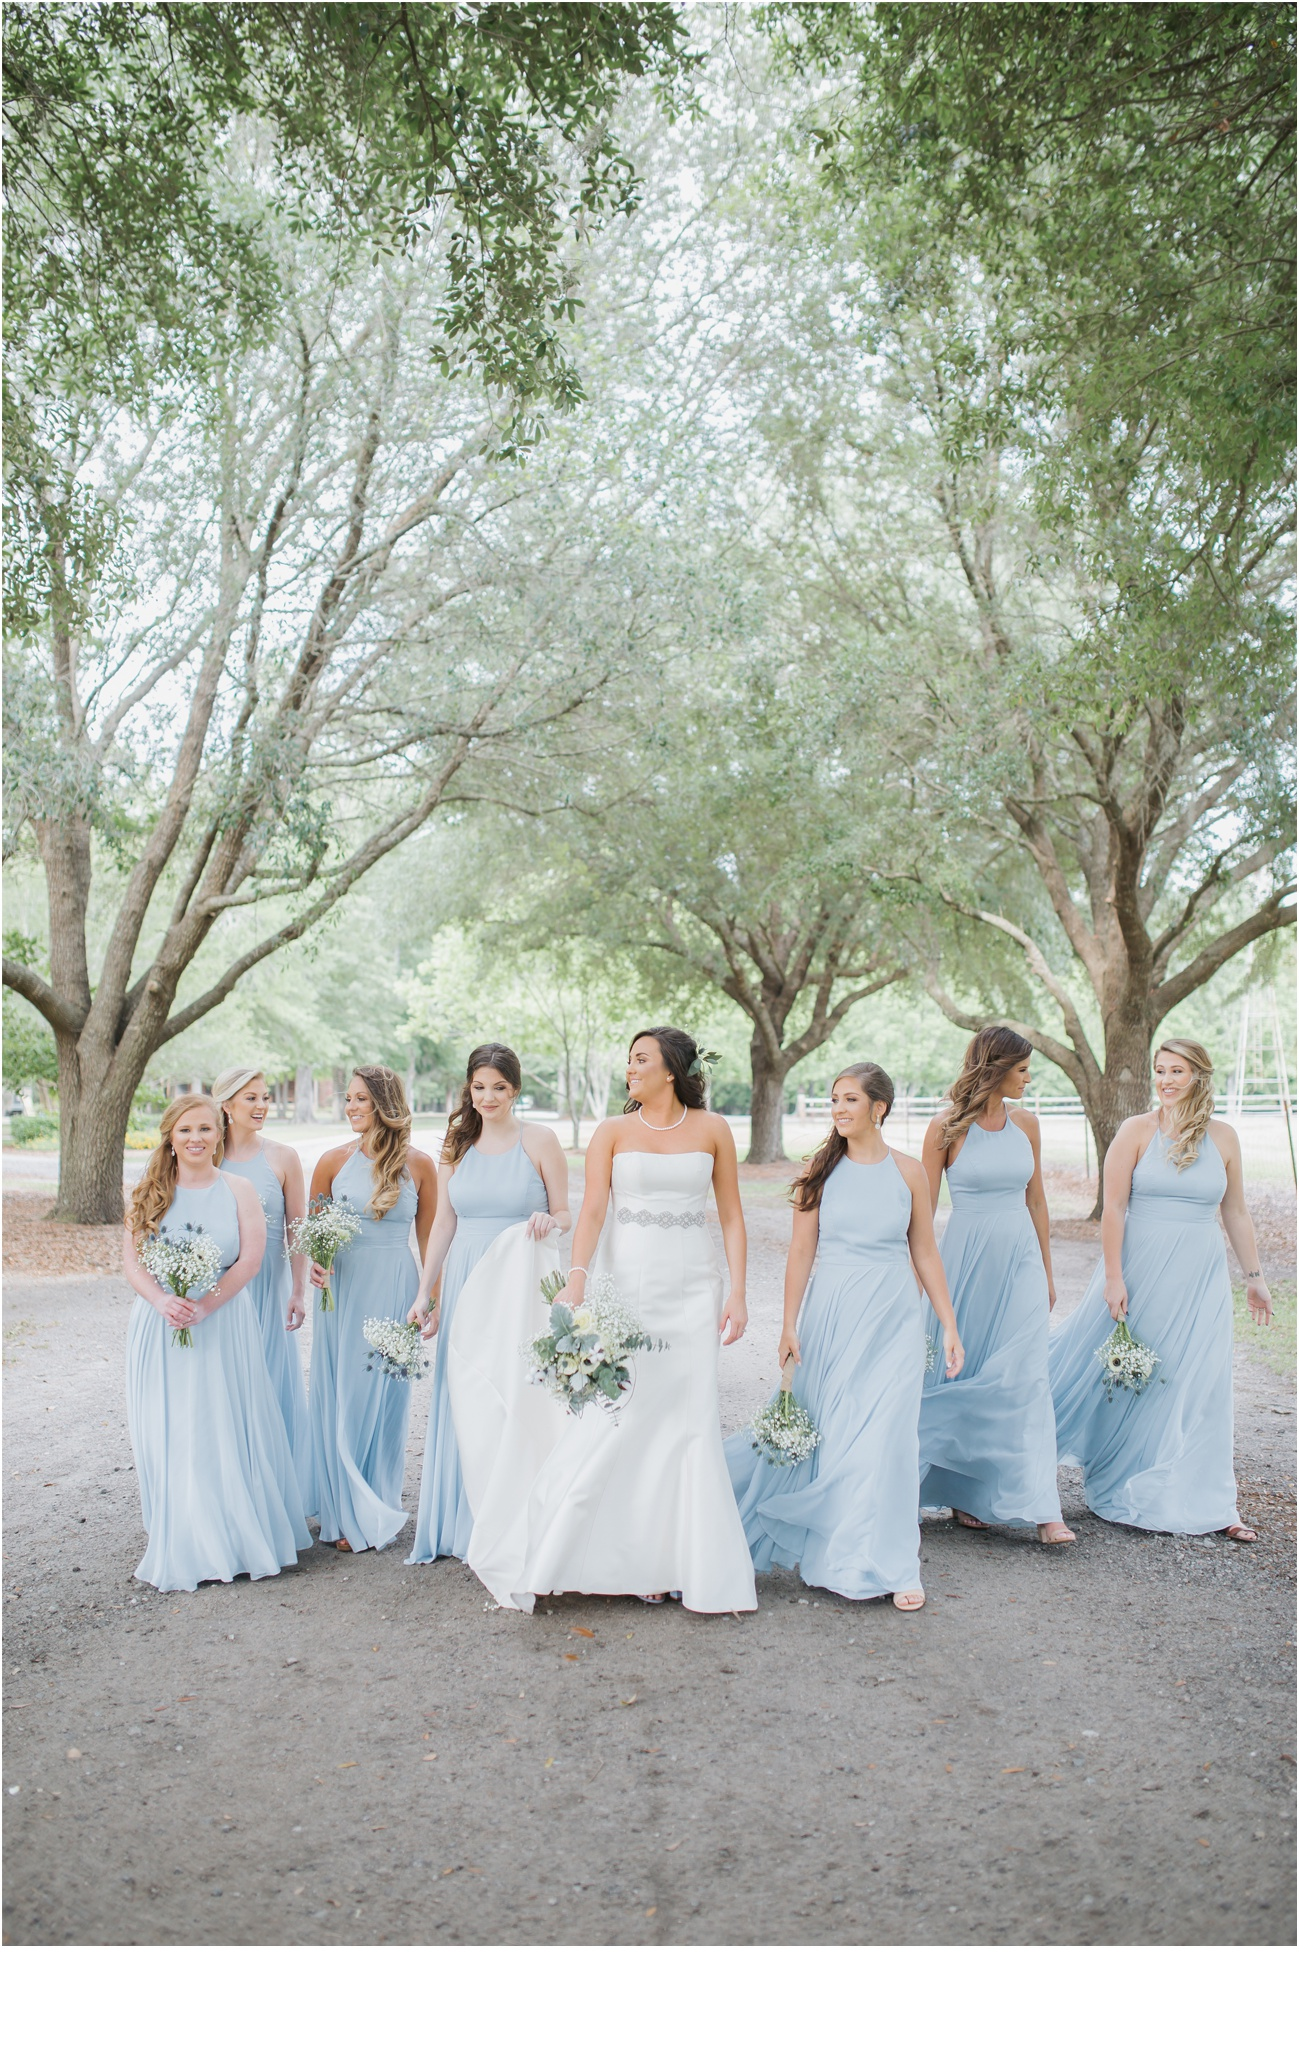 Rainey_Gregg_Photography_St._Simons_Island_Georgia_California_Wedding_Portrait_Photography_0912.jpg